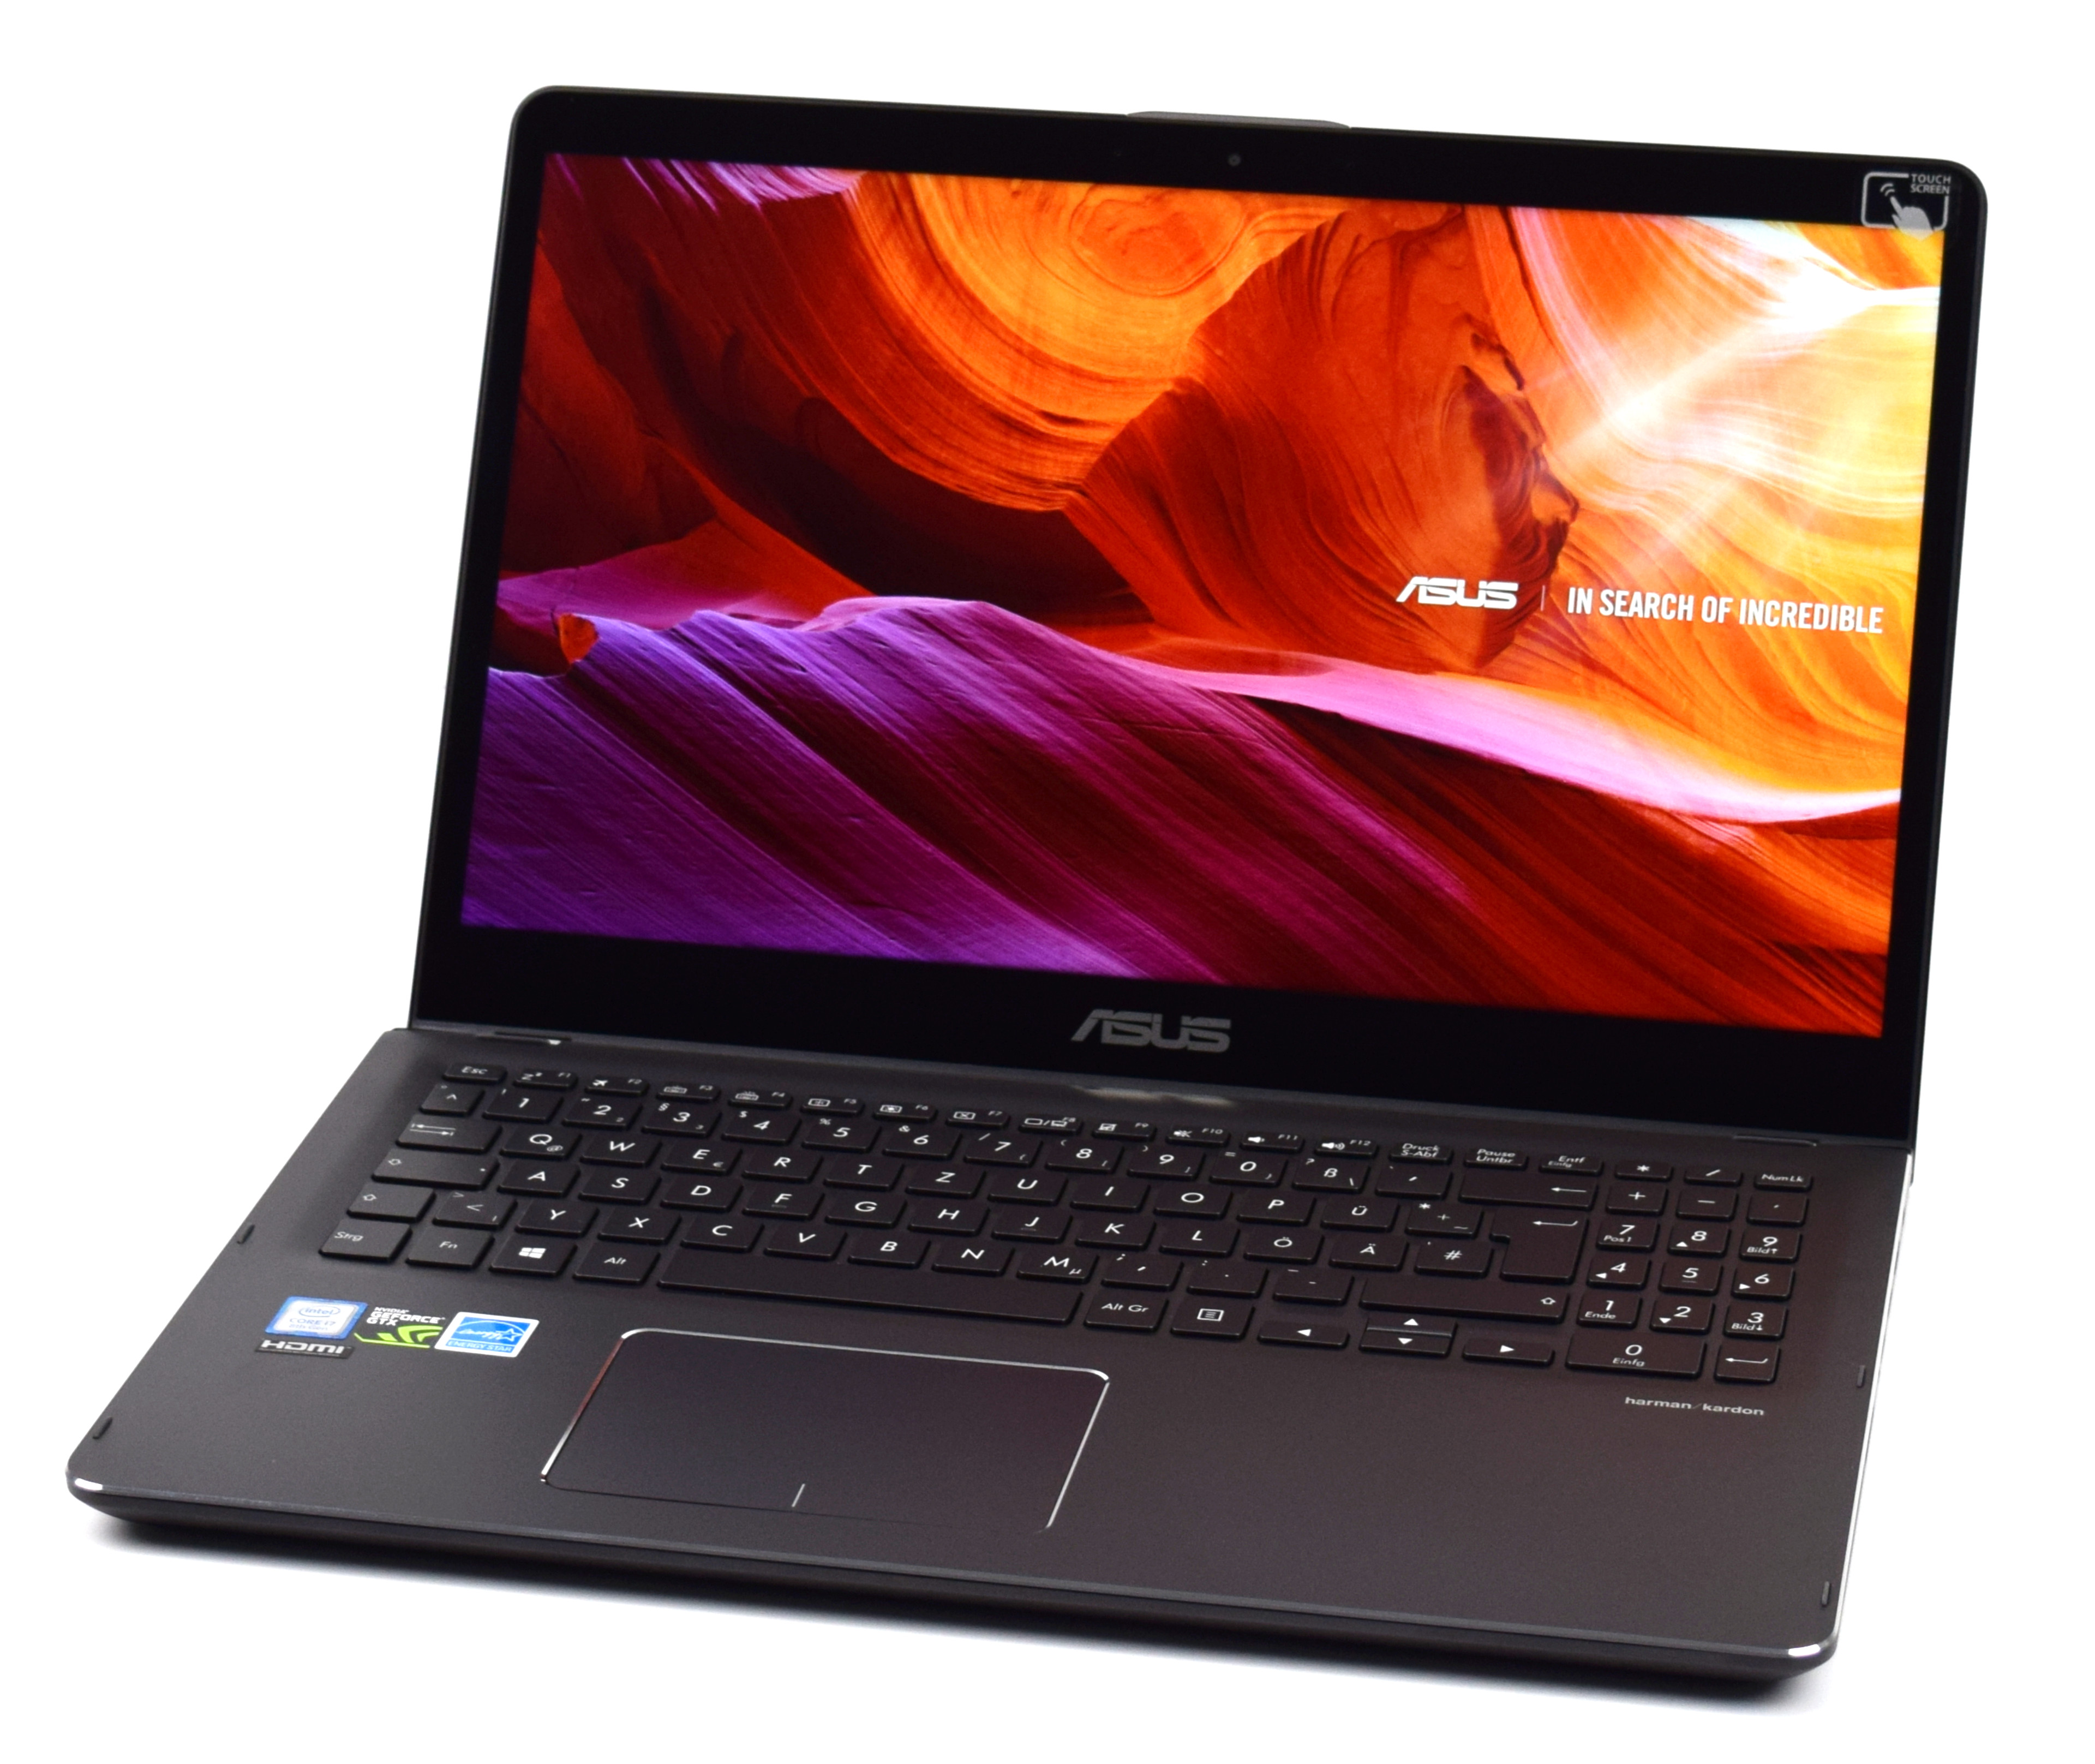 Asus ZenBook Flip 15 (i7-8550U, GTX 1050, 4K, SSD, HDD) Convertible Review  - NotebookCheck.net Reviews